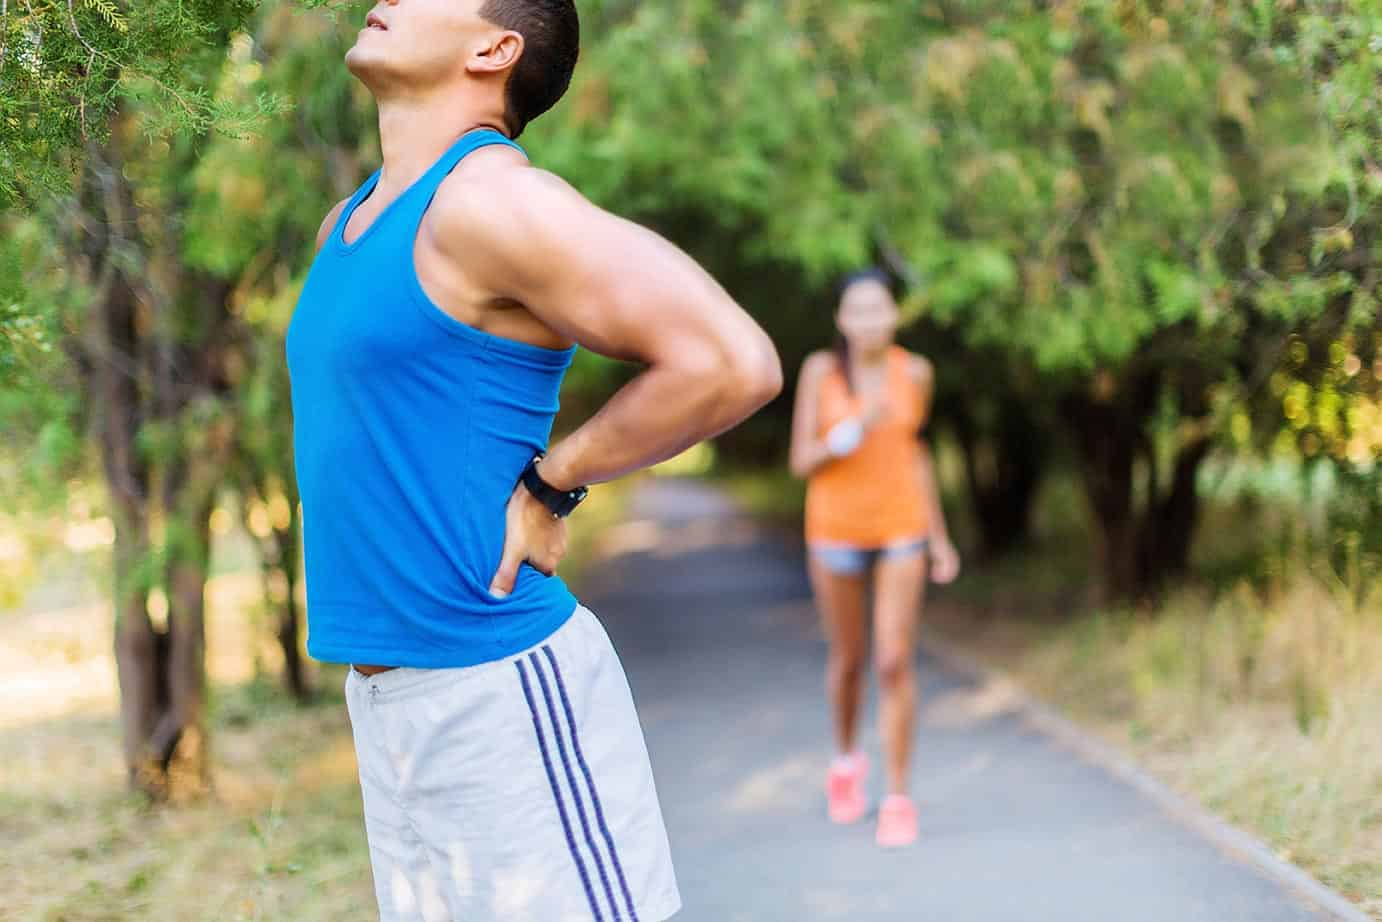 Runners Lower Back Pain